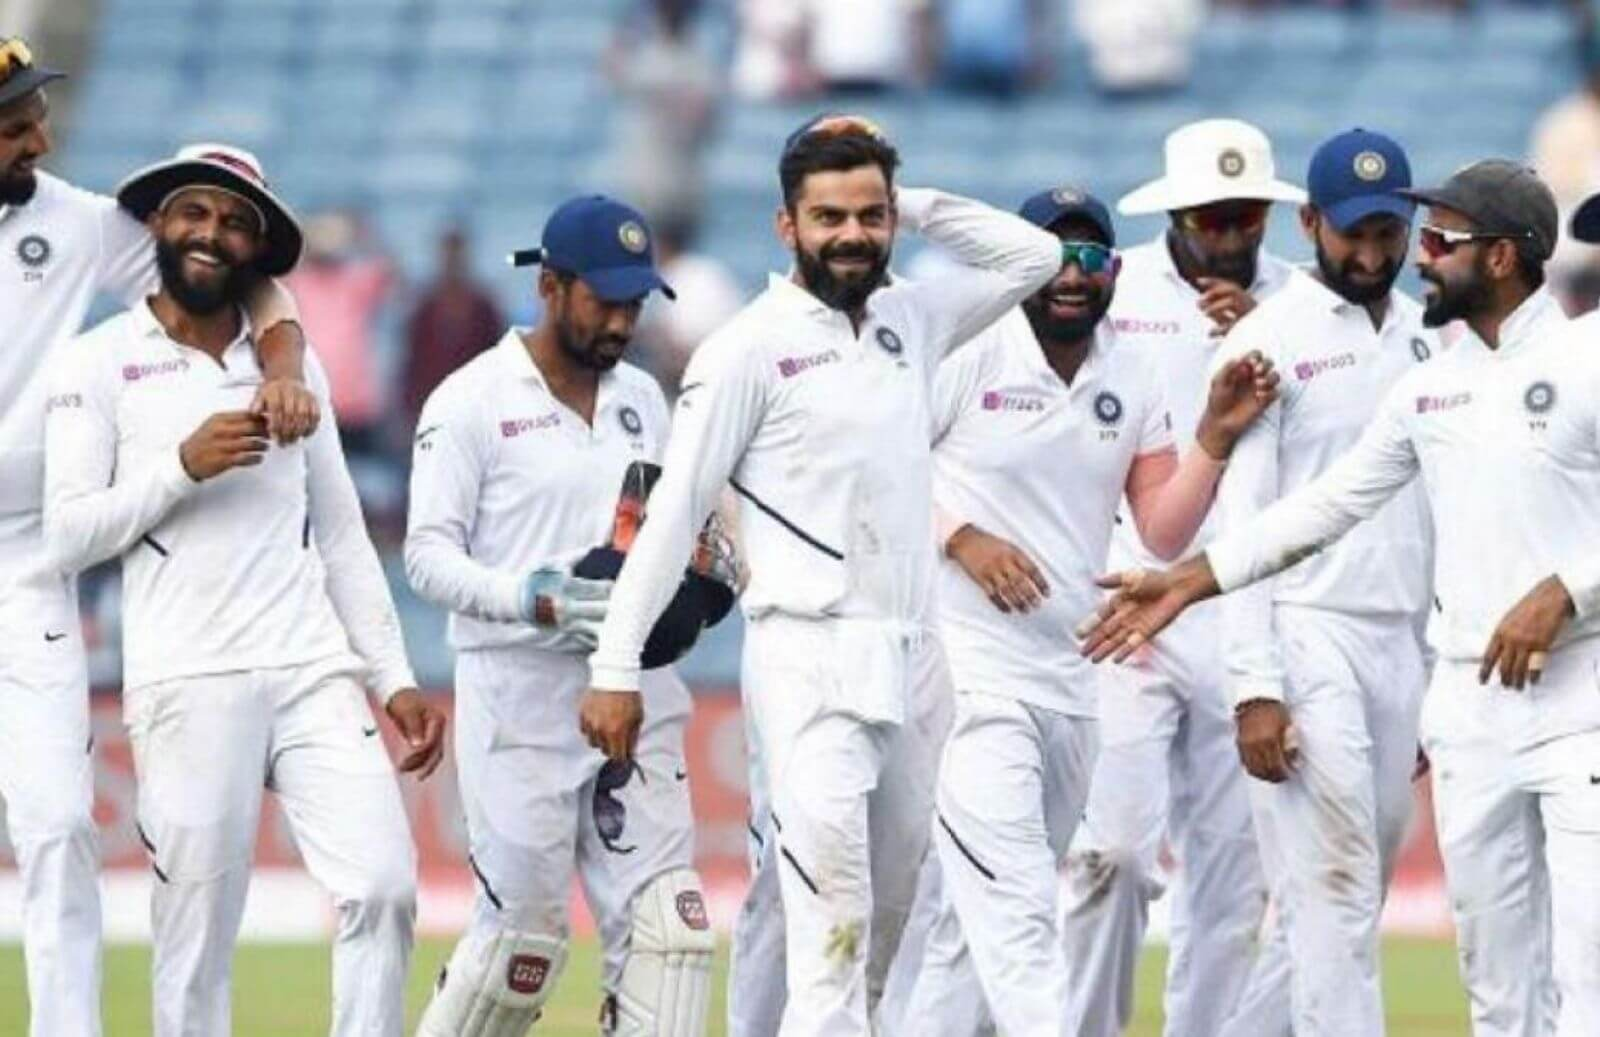 BCCI Announced Team India Playing 11 For Adelaide Test, Prithvi Shaw, Wriddhiman Saha In, Rishabh Pant Out